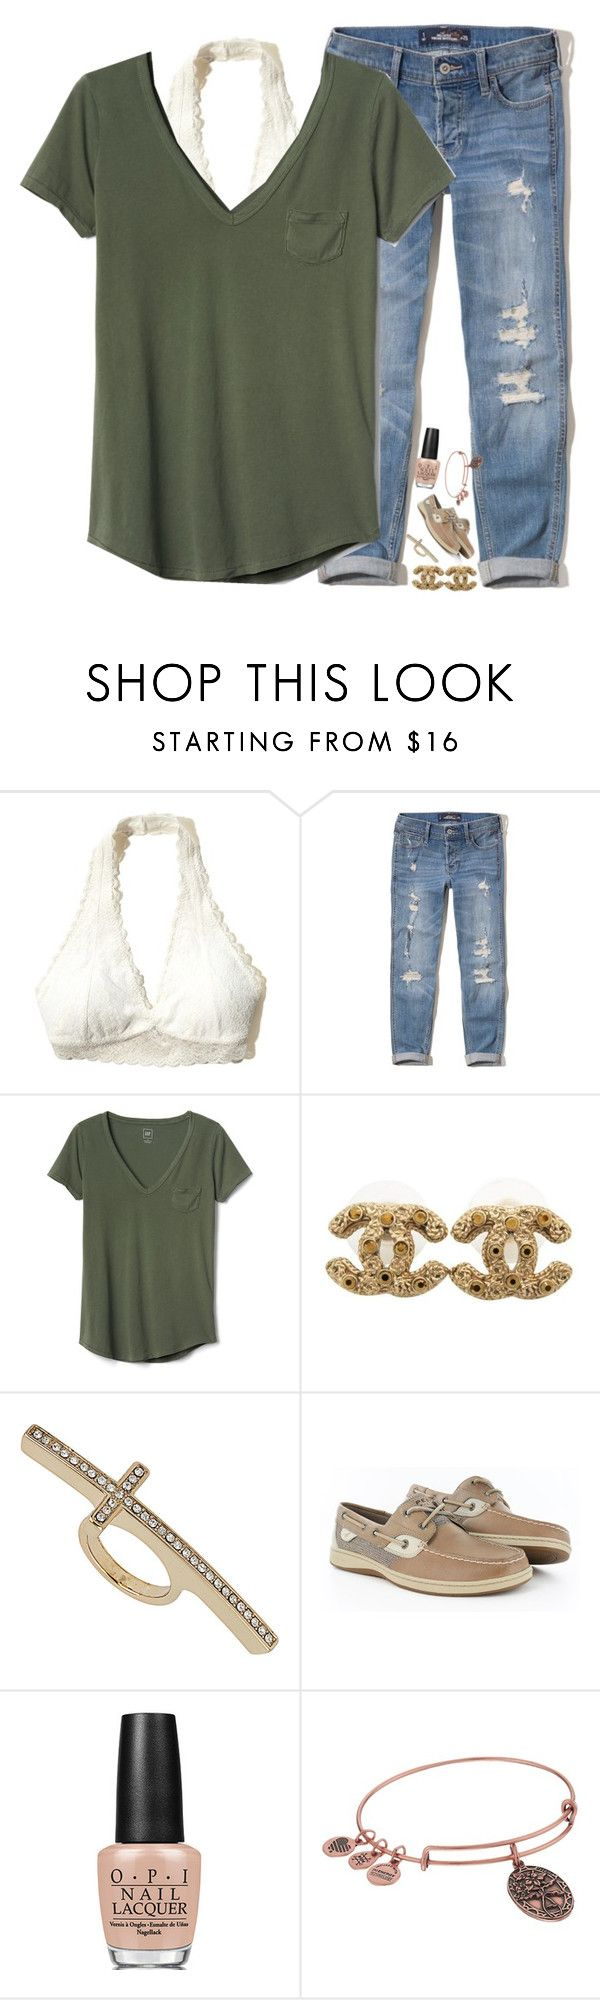 """""""give me love"""" by xoxorachelizabeth ❤ liked on Polyvore featuring Hollister Co., Gap, Chanel, Topshop, Sperry, OPI and Alex and Ani"""